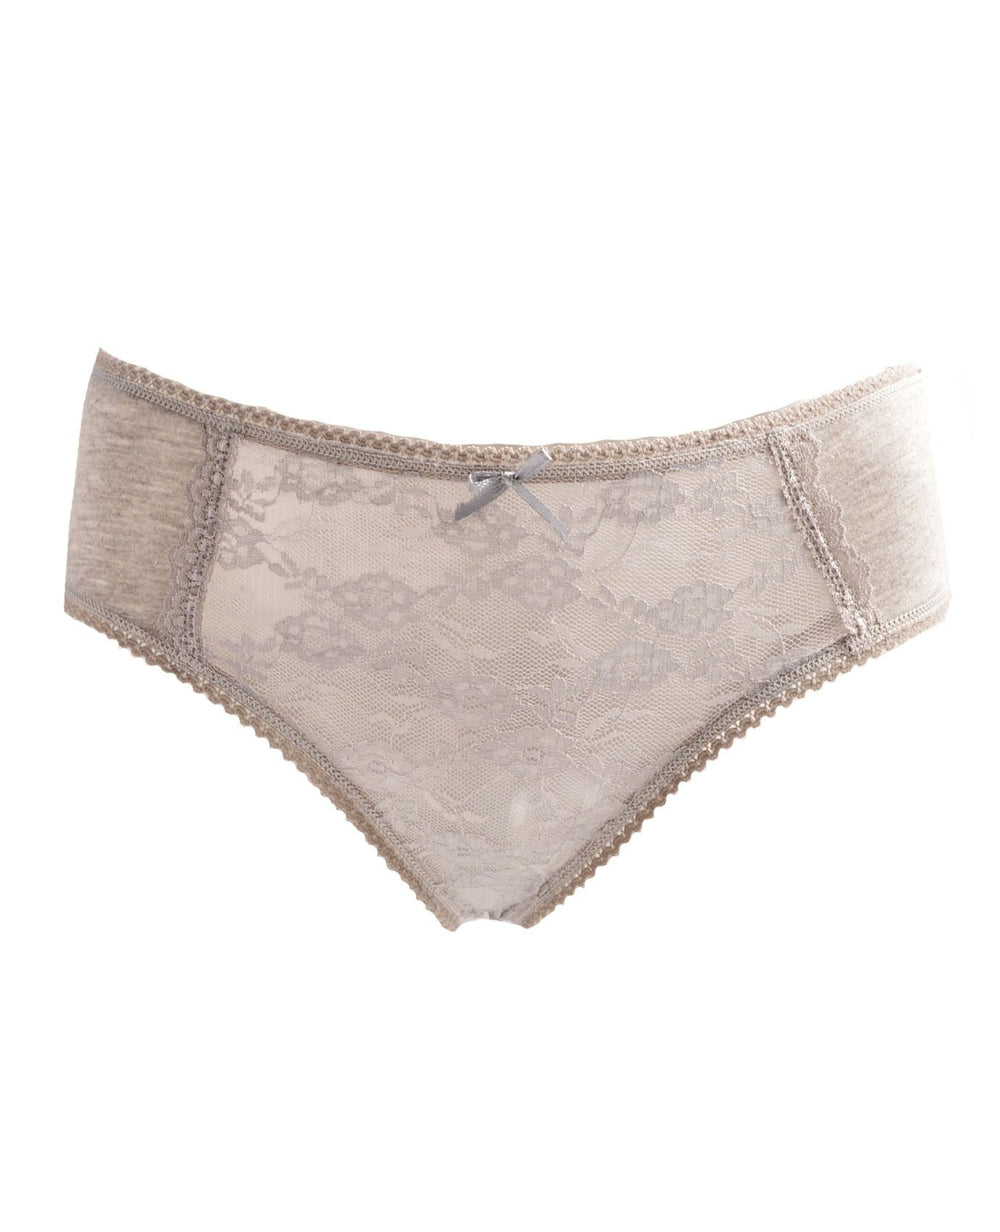 Vision Intimates Vintage Lace Panty